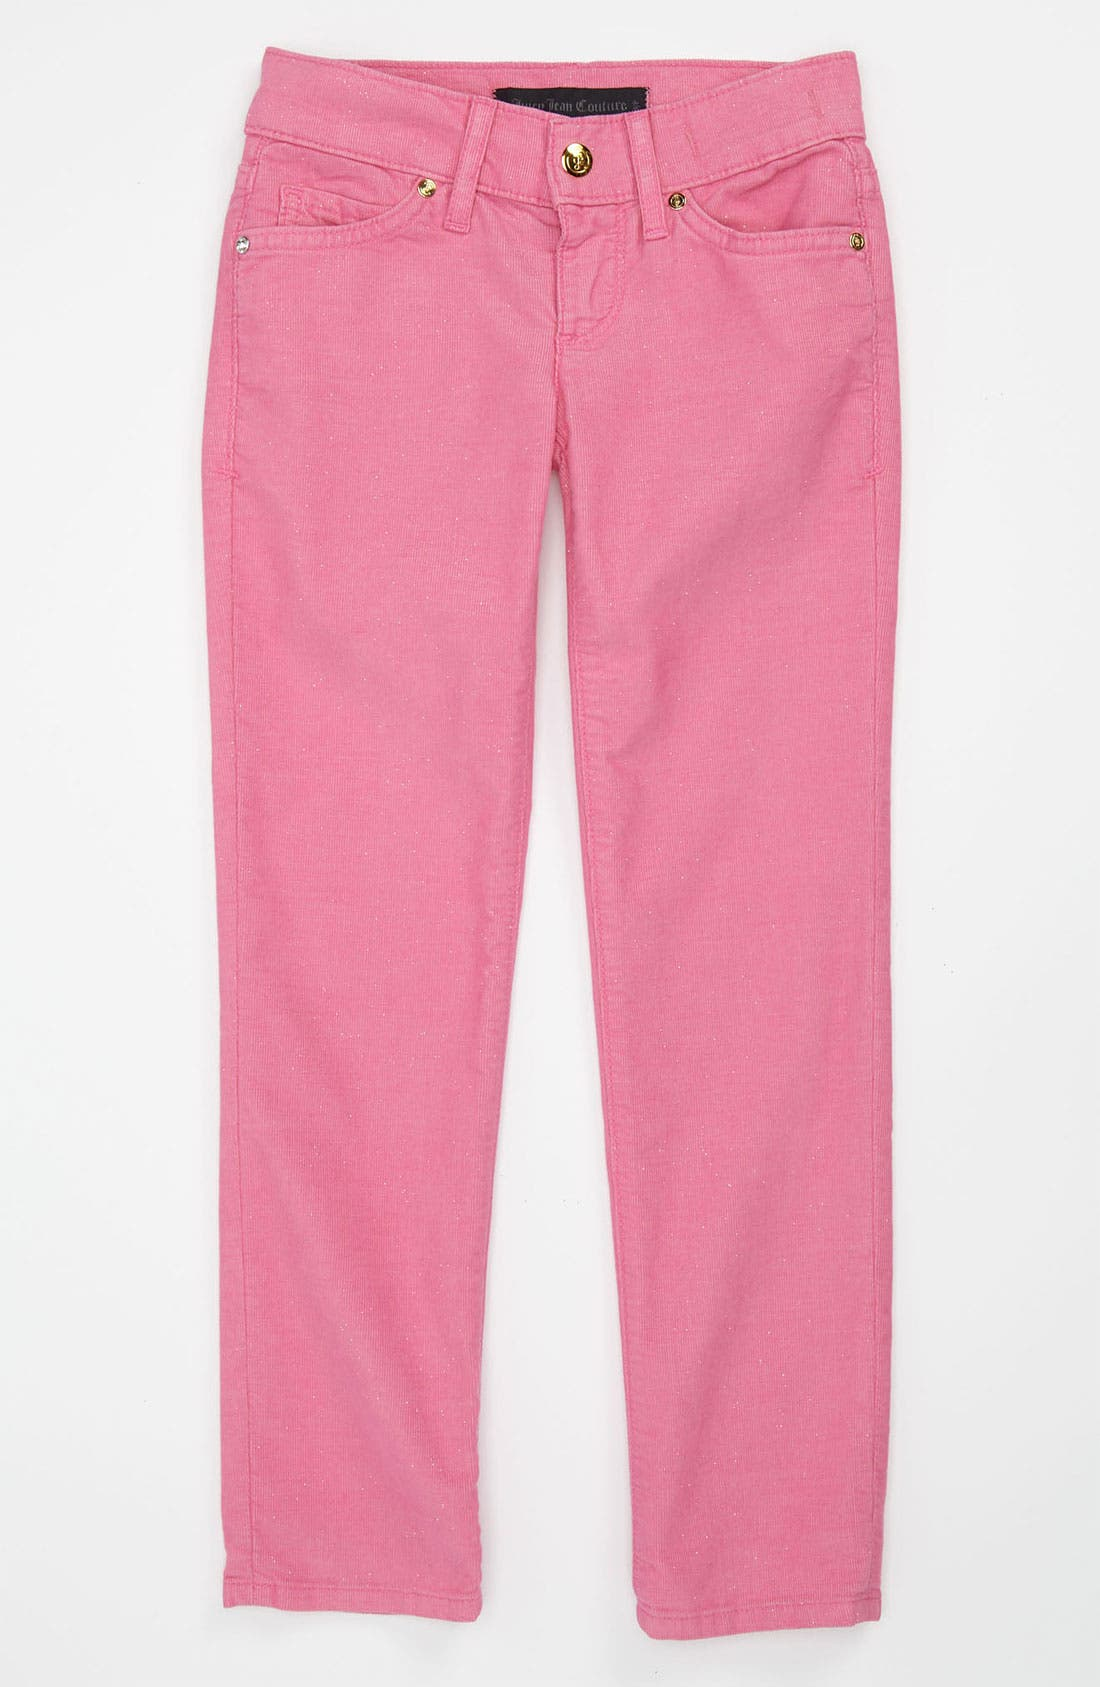 Alternate Image 1 Selected - Juicy Couture Glitter Corduroy Pants (Little Girls & Big Girls)